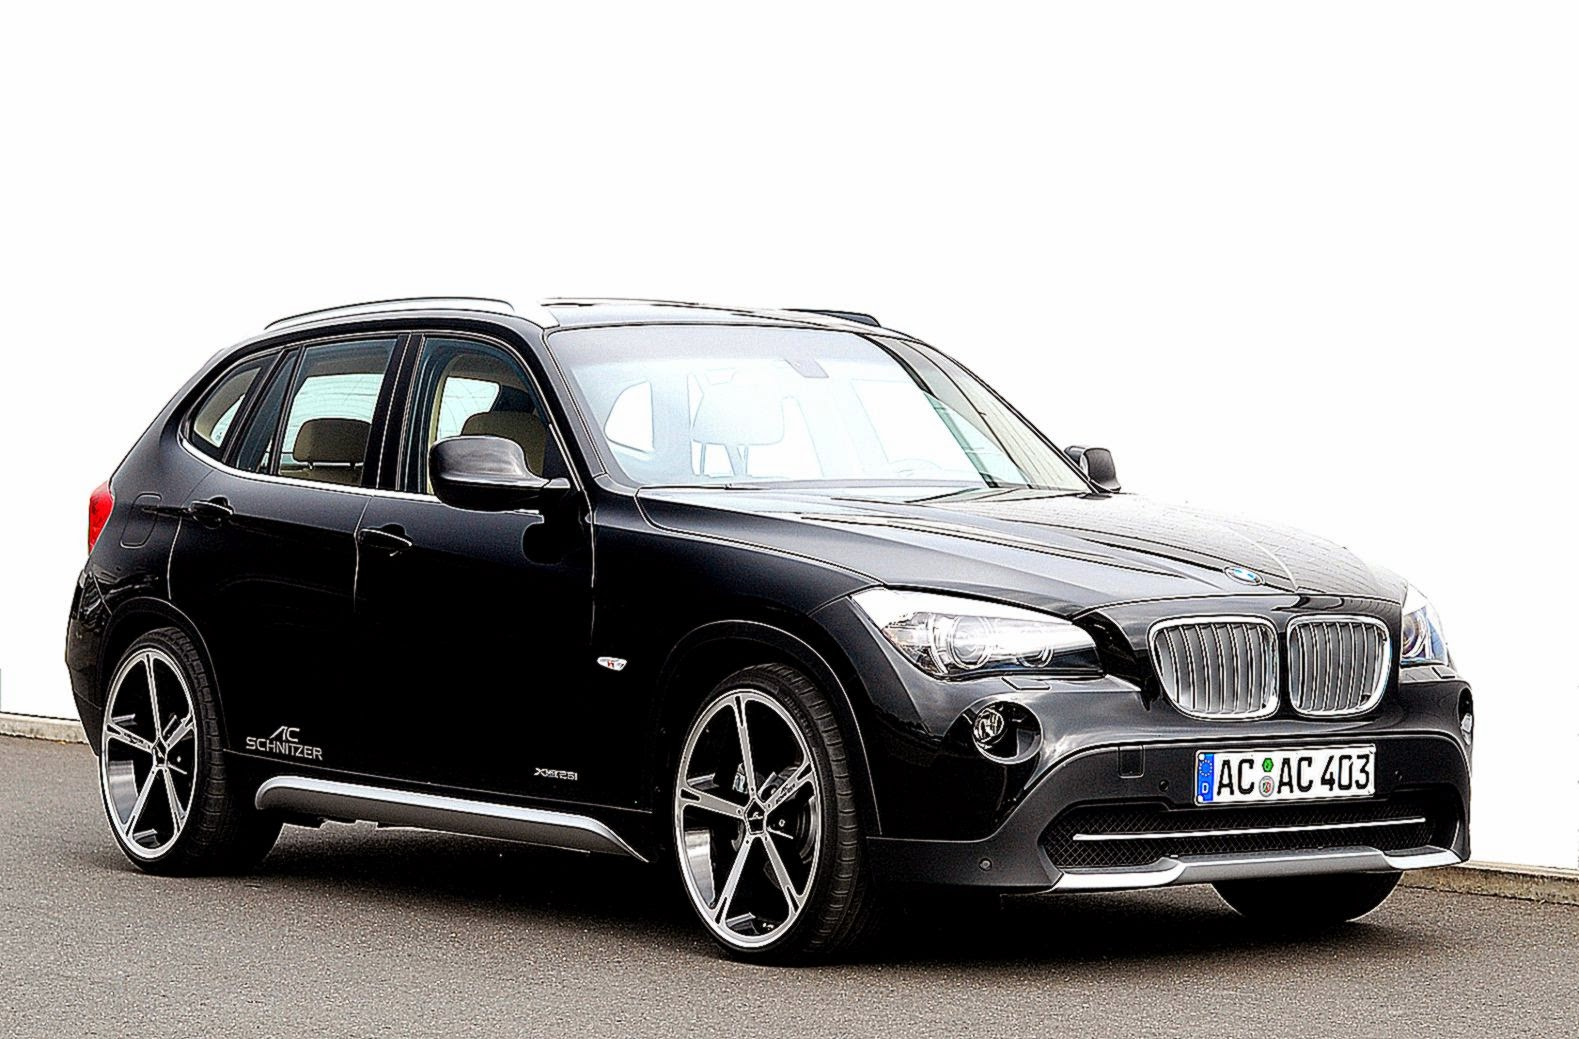 Black Bmw X1 Rims Modified Wallpaper Best Background Wallpaper